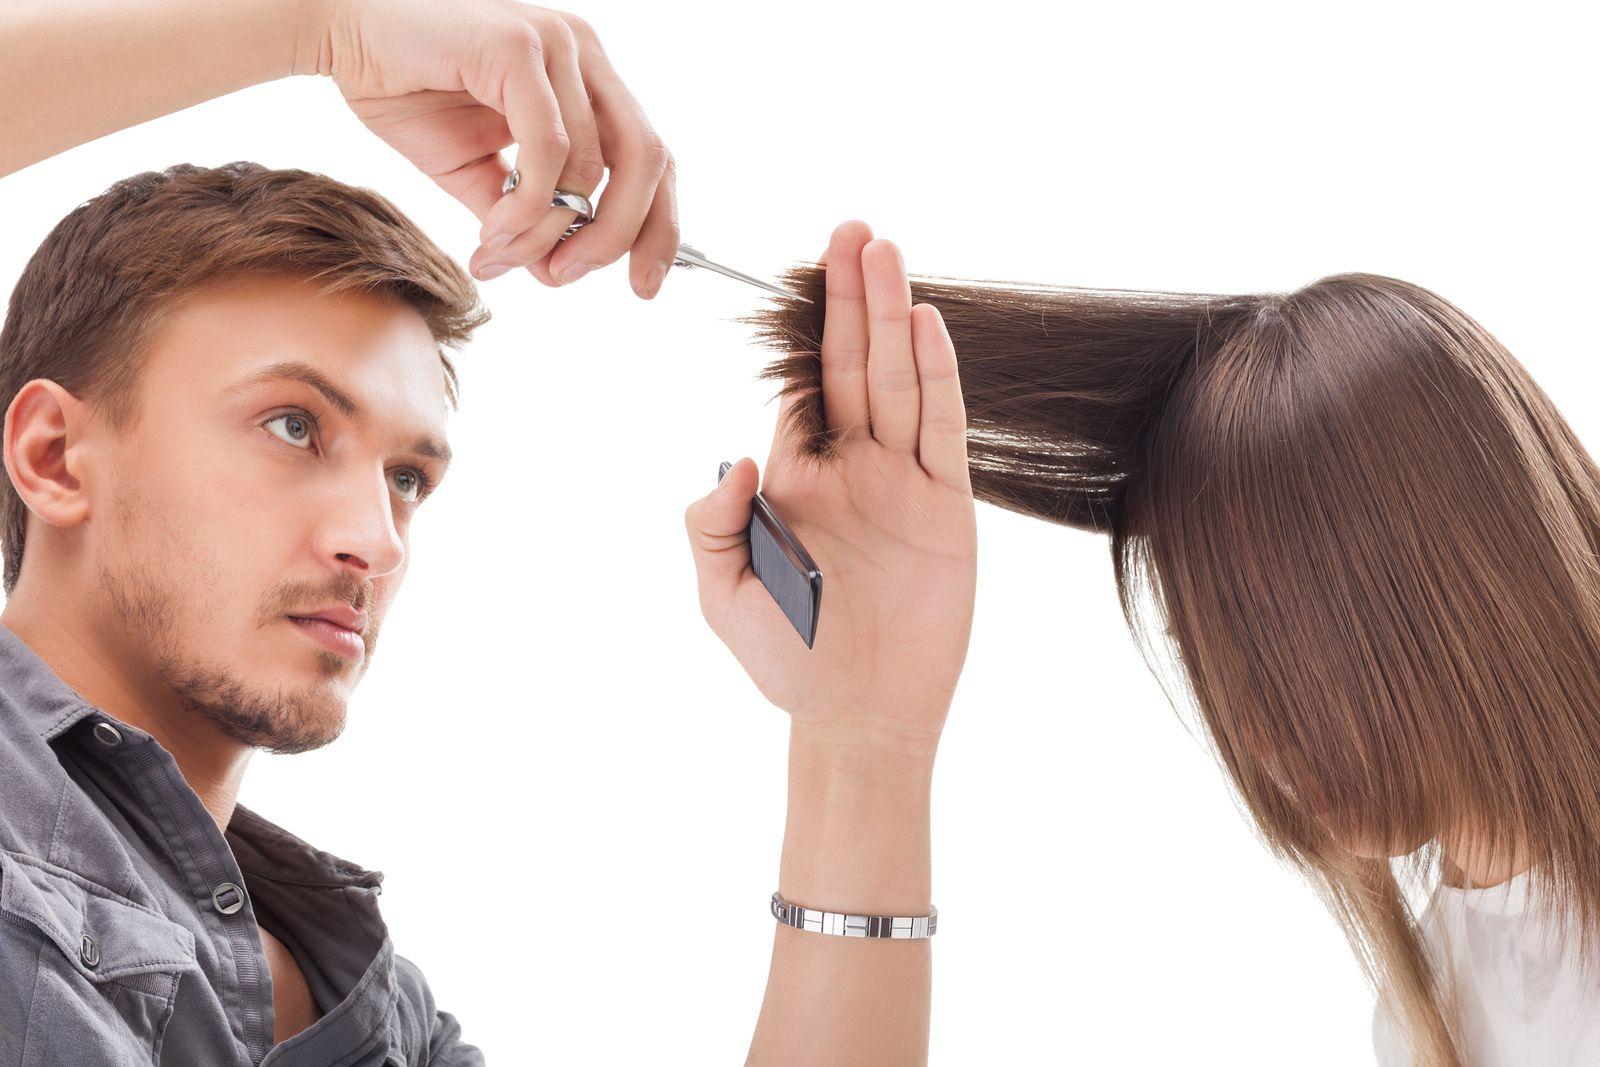 Cosmetology/Barbering